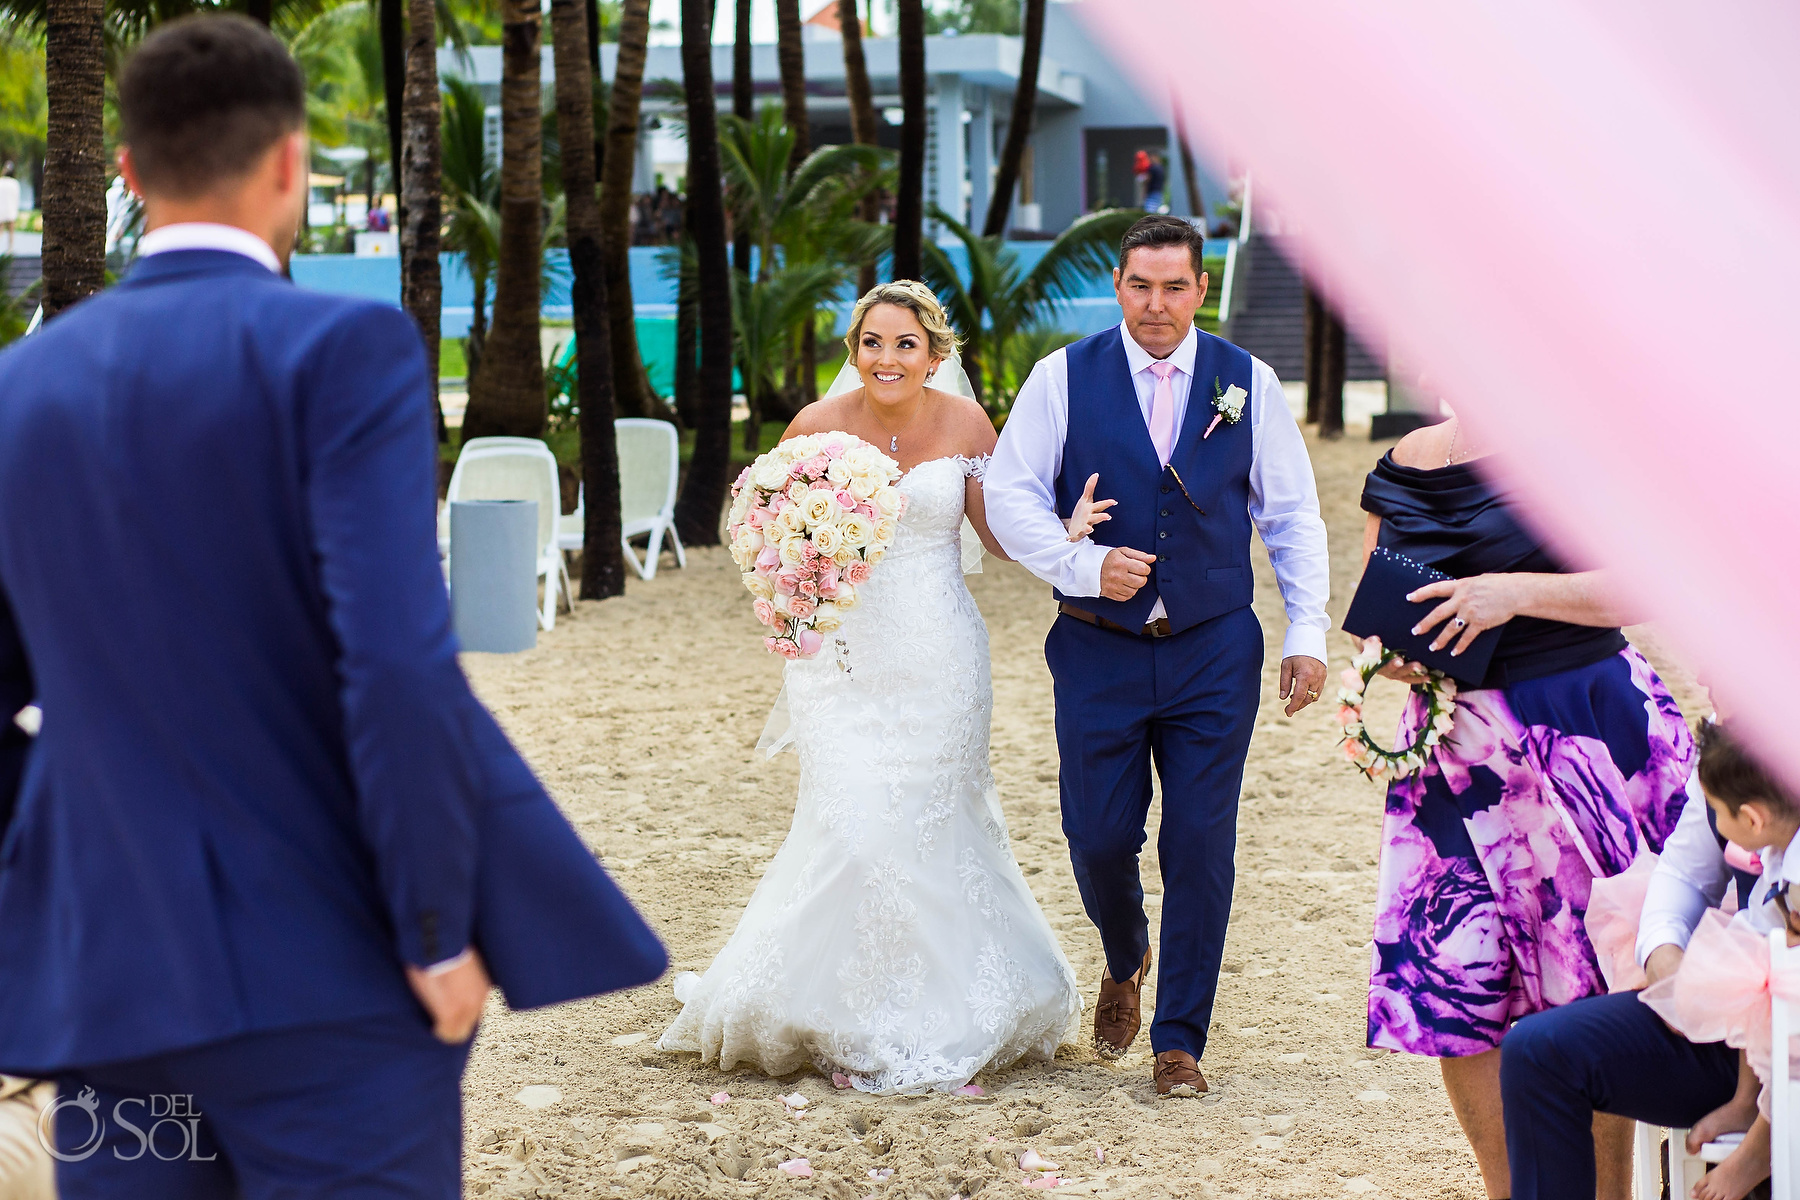 Bride groom First look walking with dad on the beach